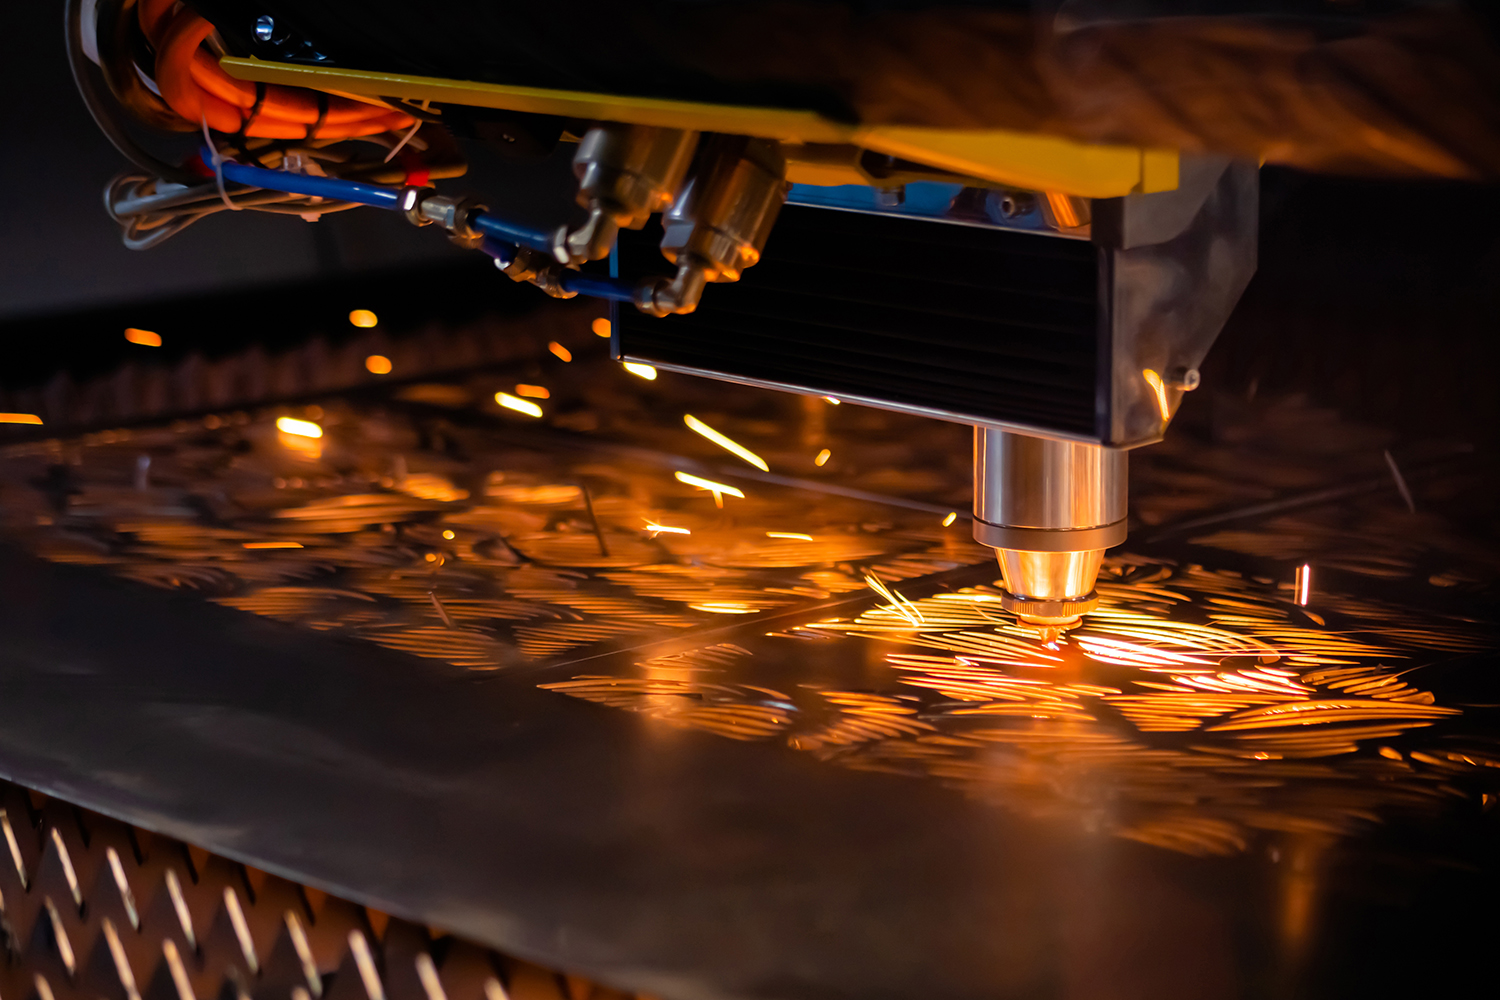 Automatic cnc laser cutting machine working with sheet metal with sparks at factory, plant. Metalworking, industrial, equipment, technology, machining, manufacturing concept